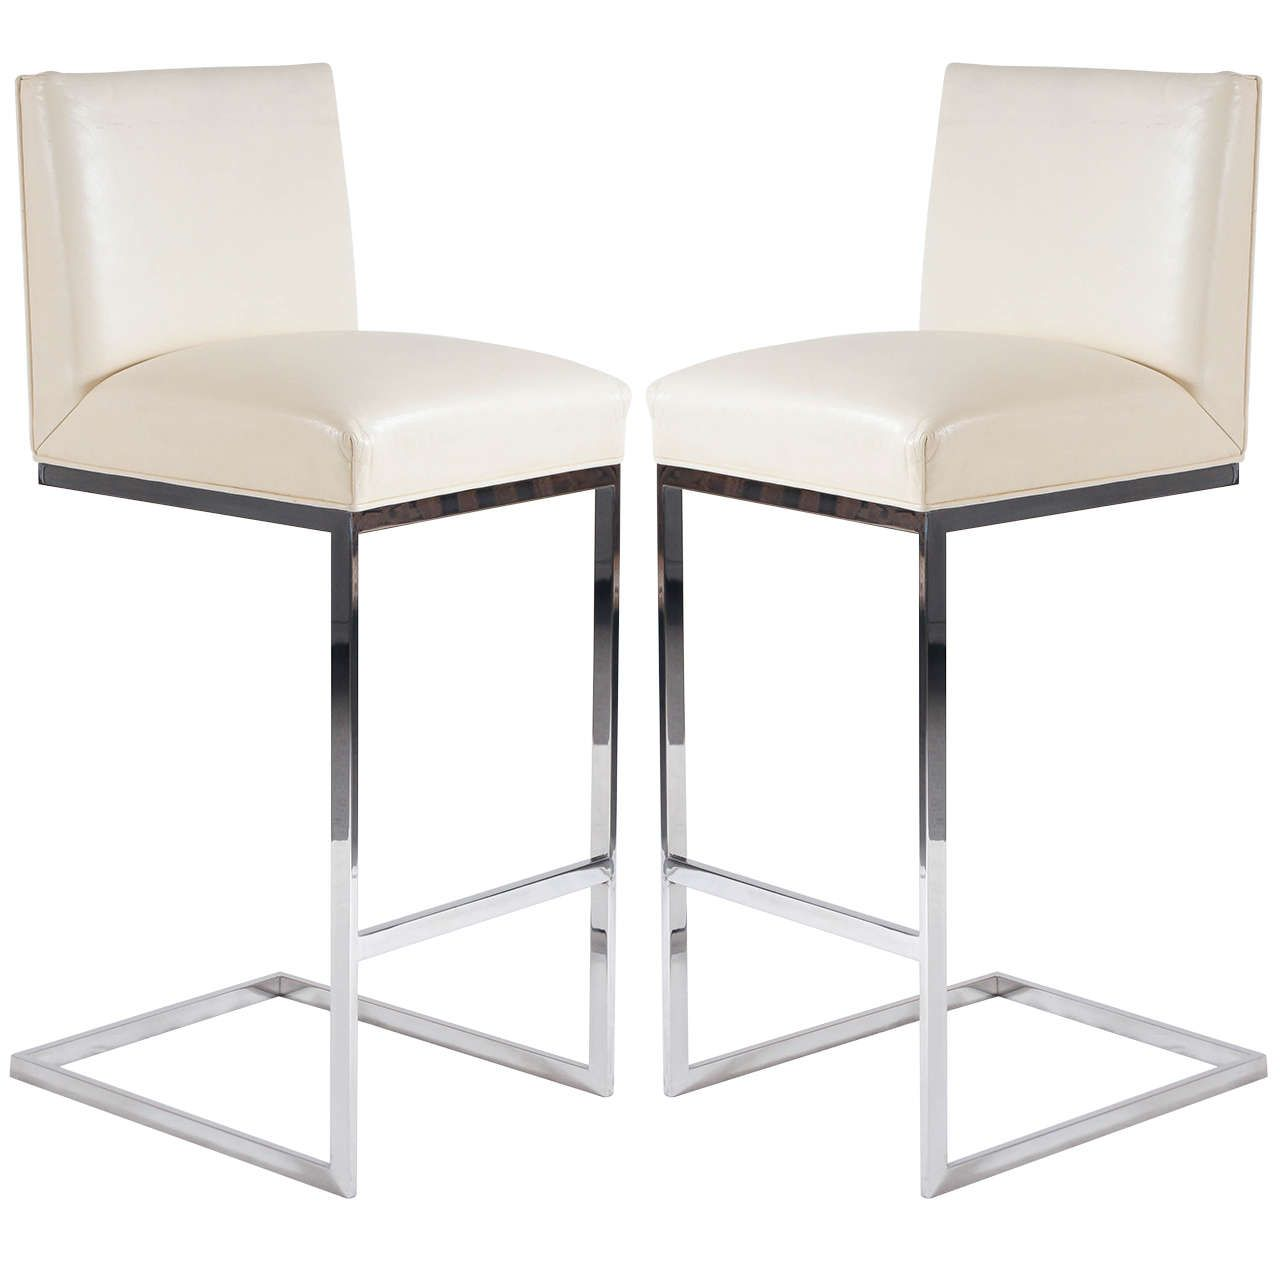 Brilliant Pair Of Bar Stools In Leather Polished Stainless Steel By Creativecarmelina Interior Chair Design Creativecarmelinacom